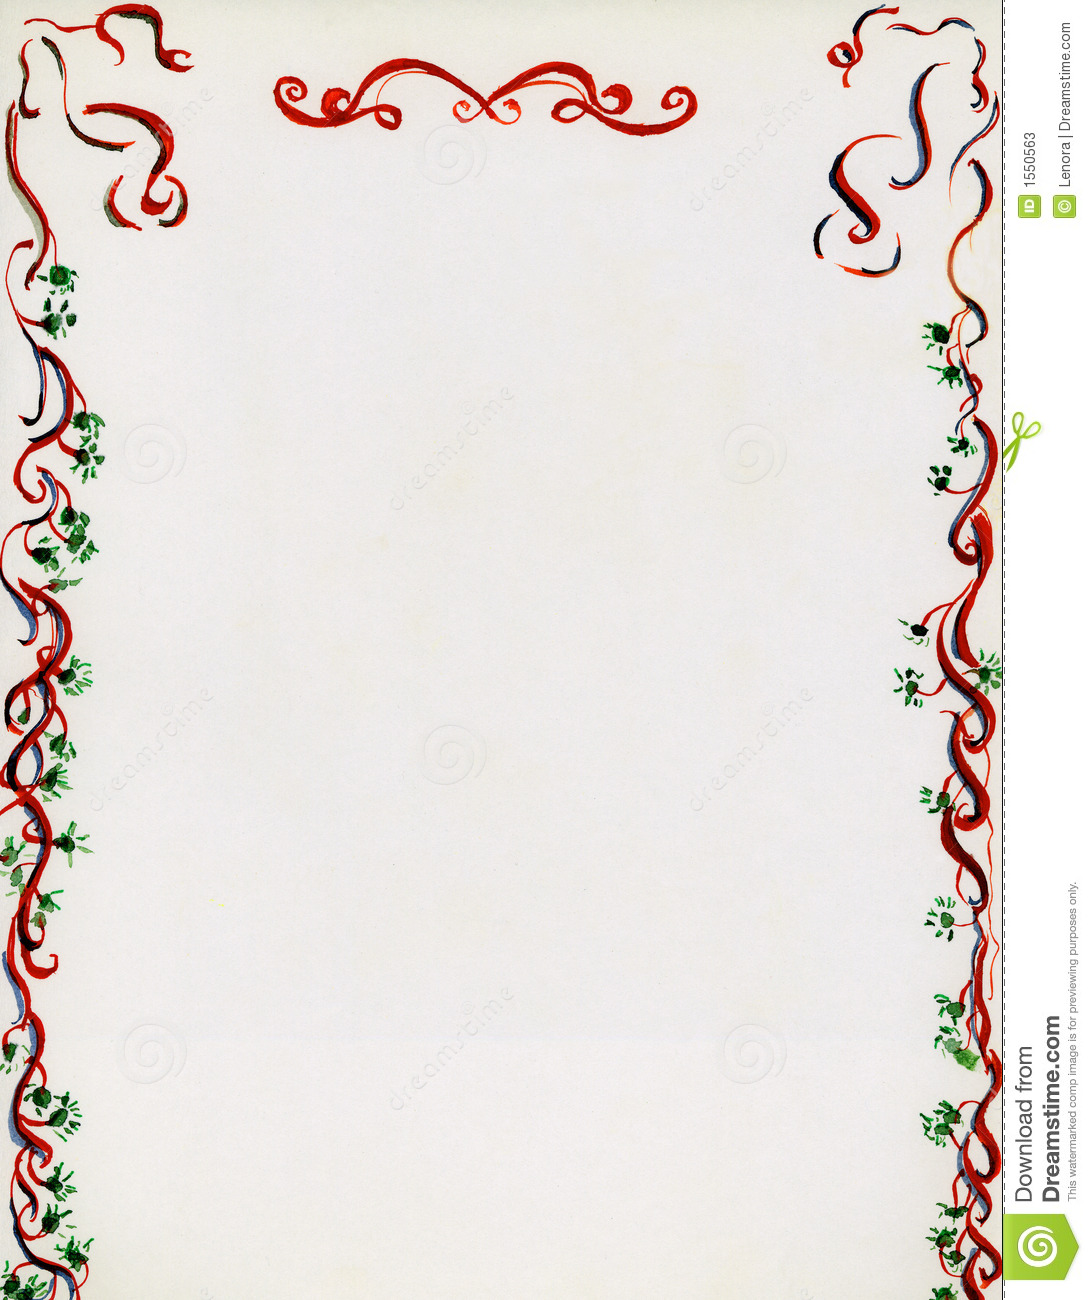 christmas stationery or background used for flyers invitations letters ...